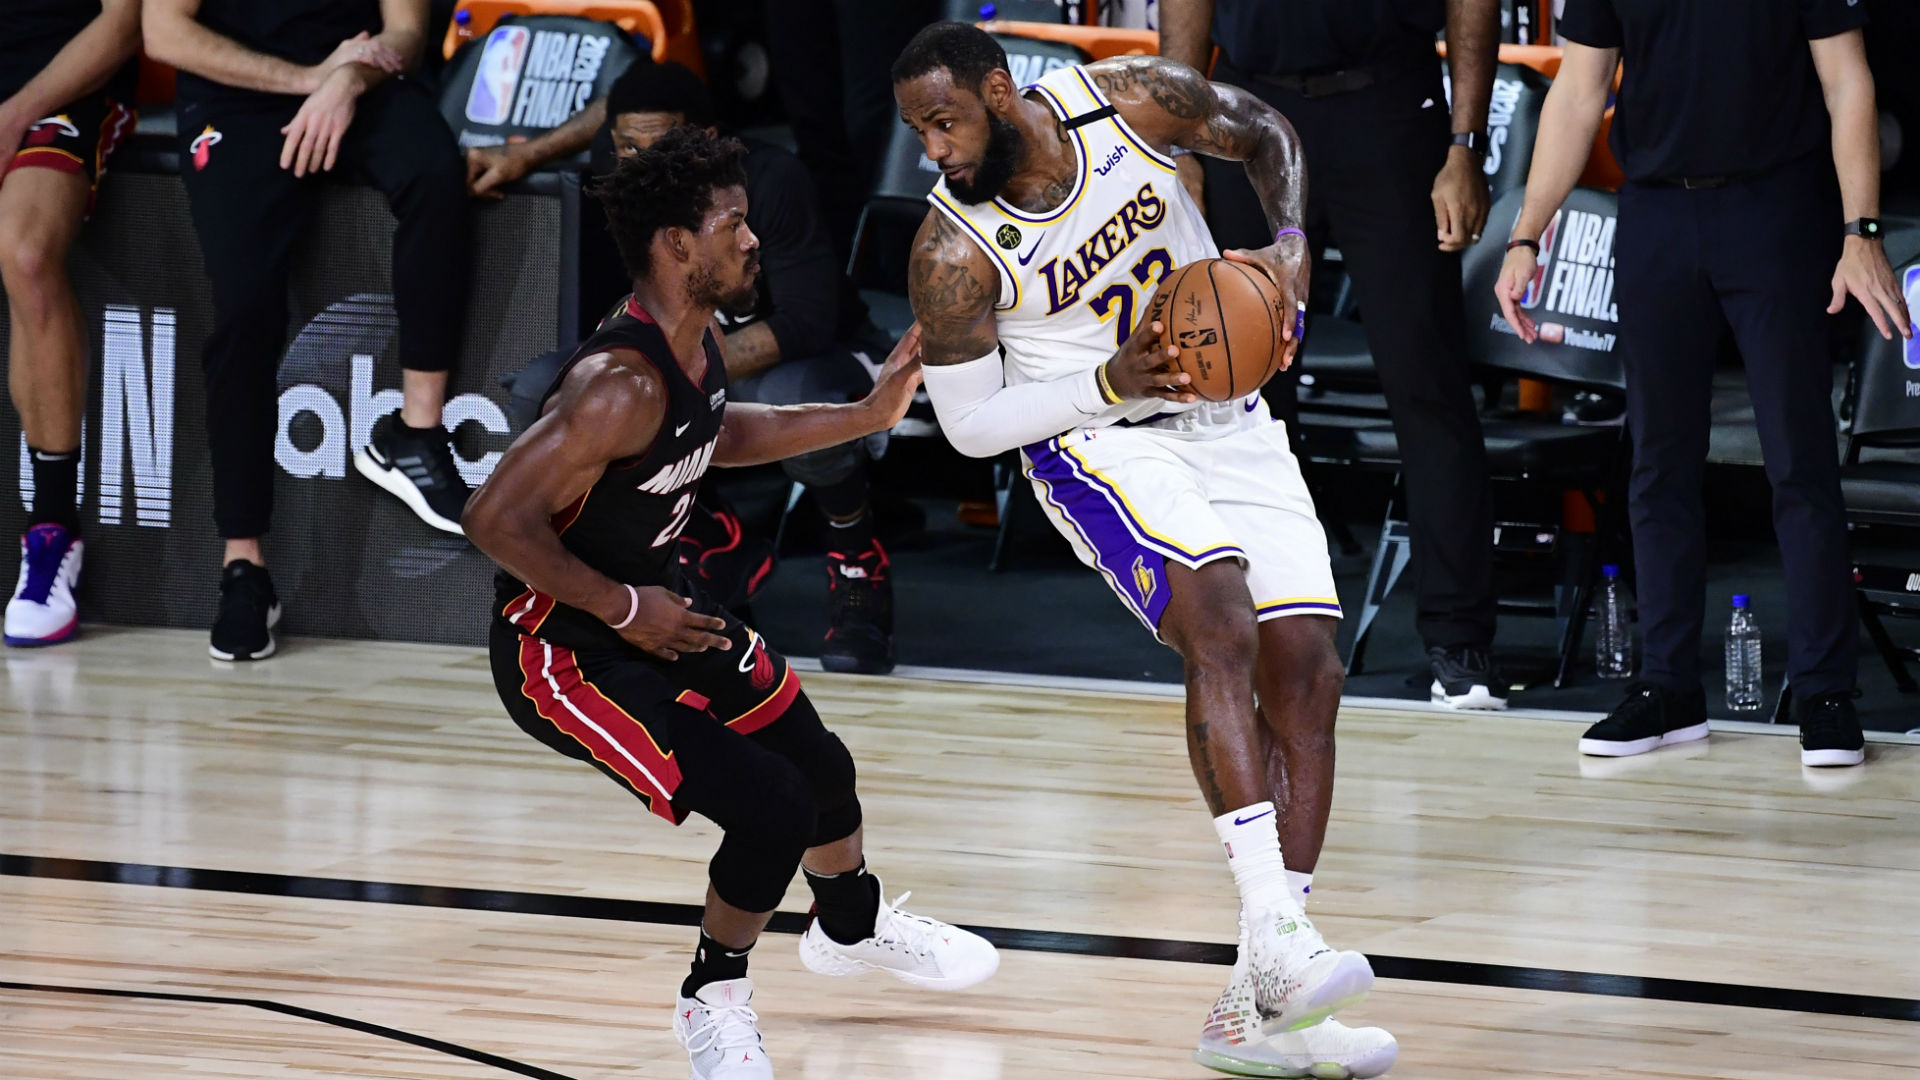 Lakers Vs Heat Live Score Updates Highlights From Game